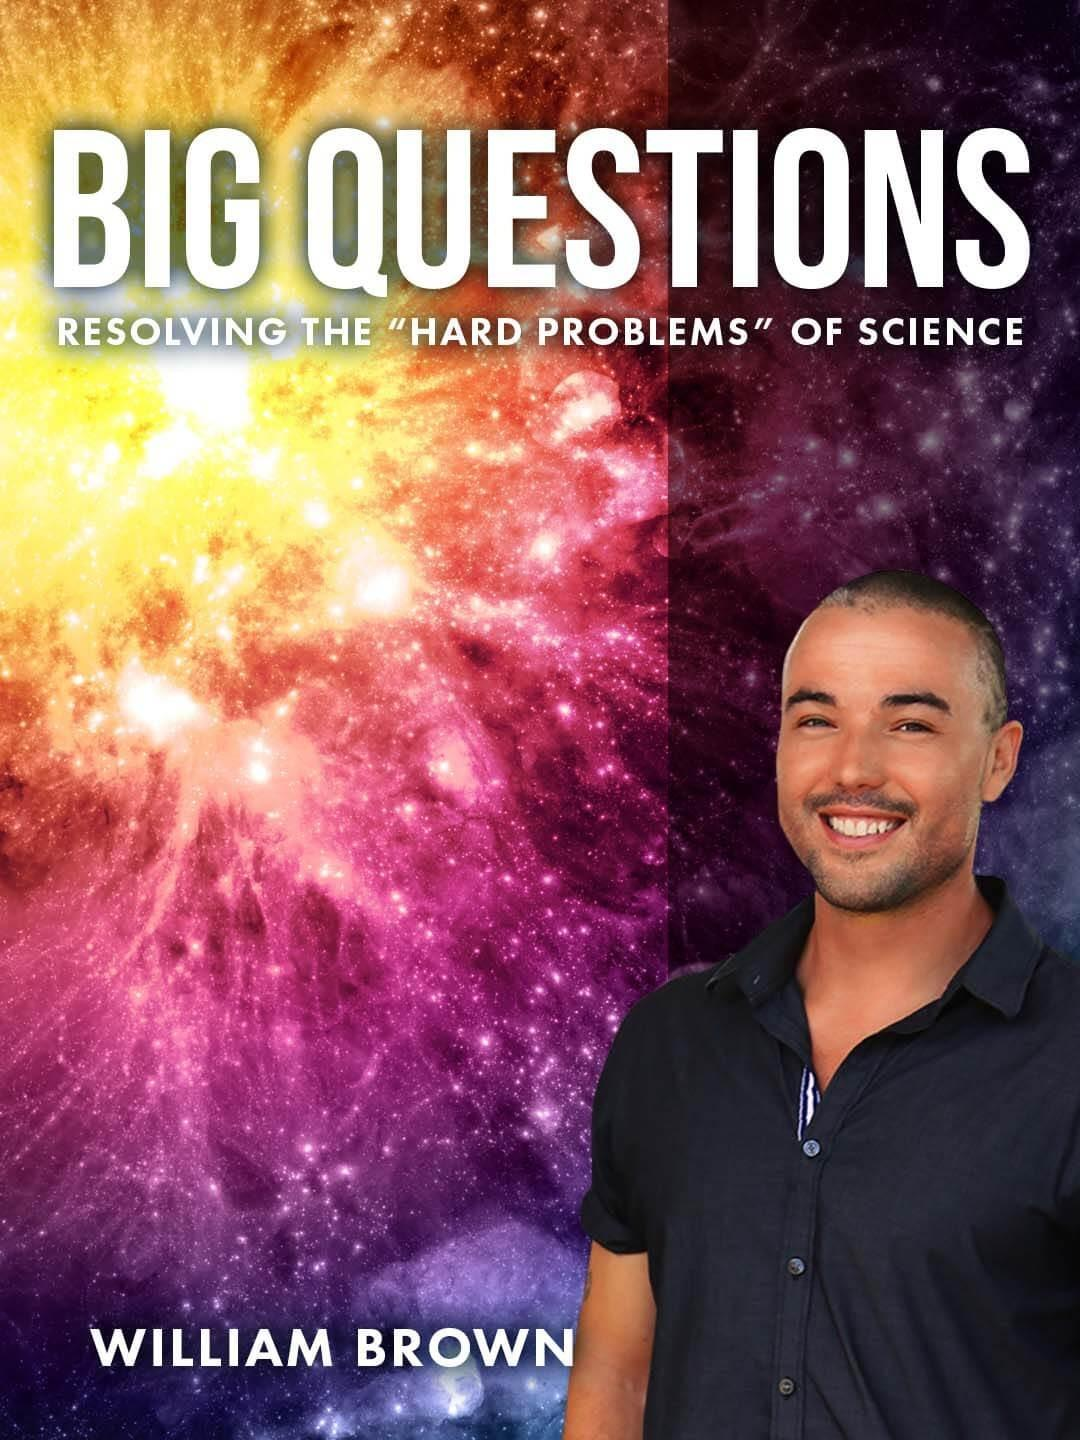 Big Questions, a Resonance Academy Elective from resident biophysicist, William Brown